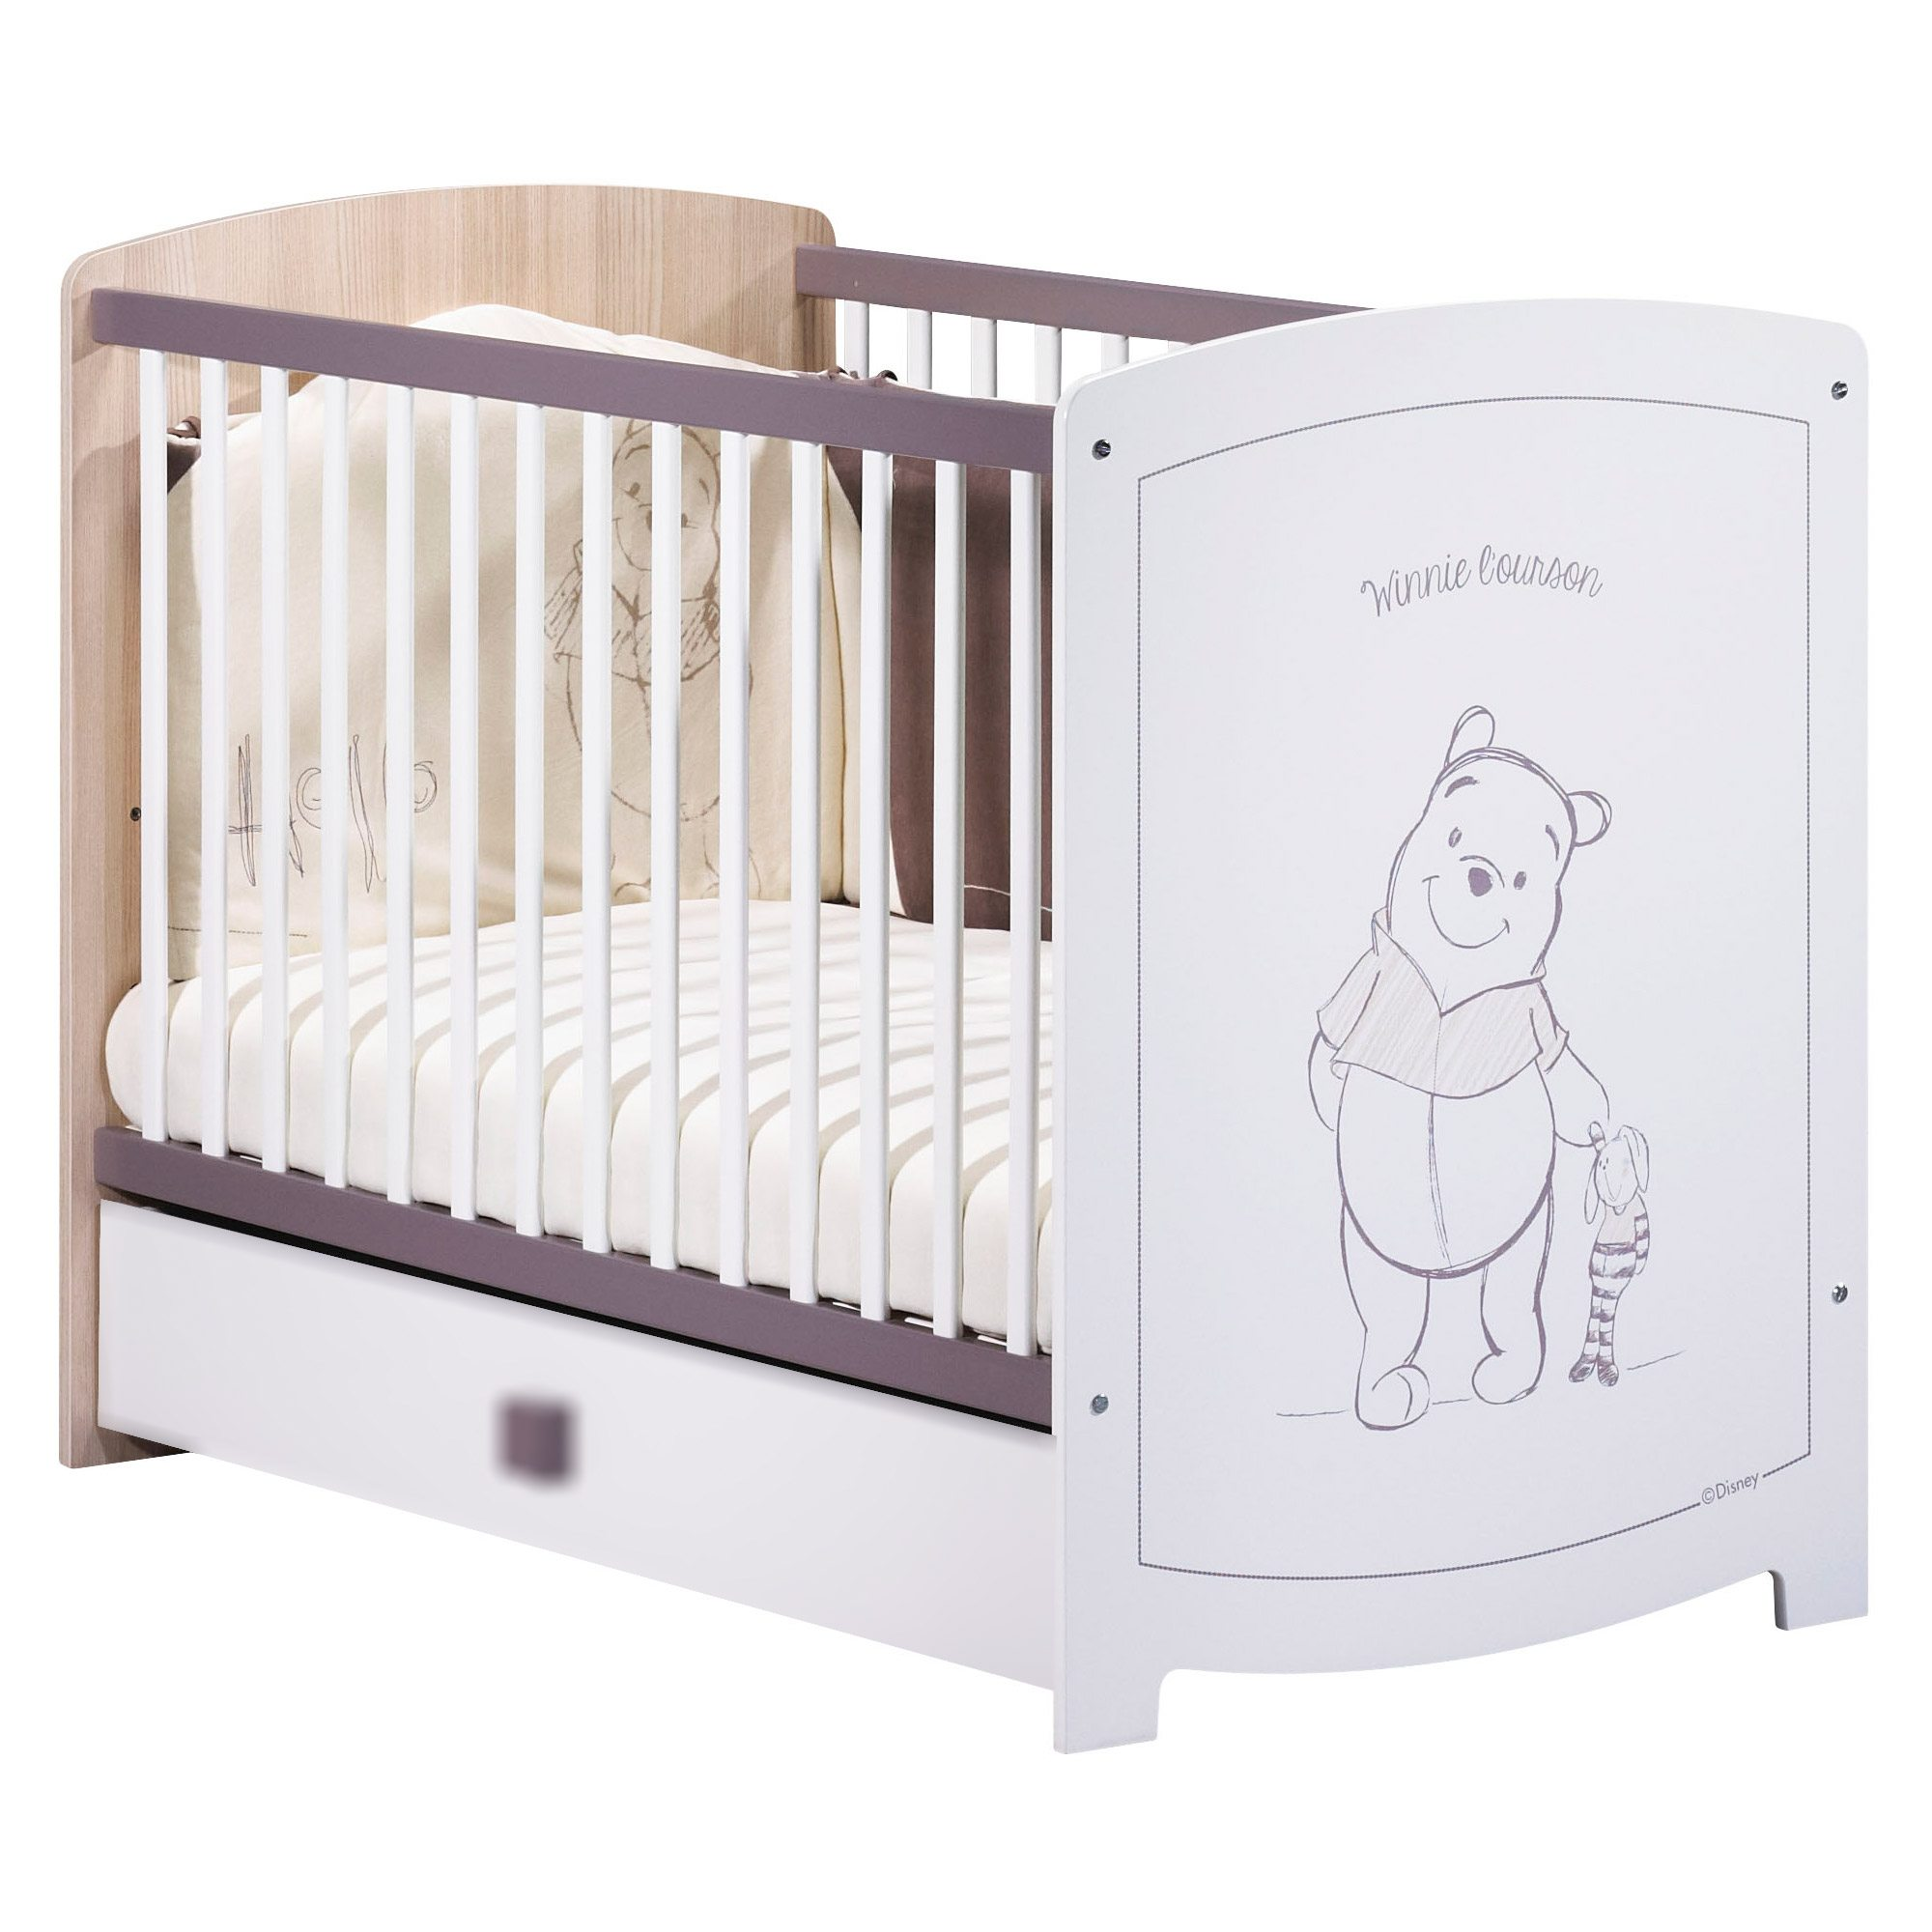 Lit Sauton Lit Bébé 60x120 Non Transformable Winnie Sauthon